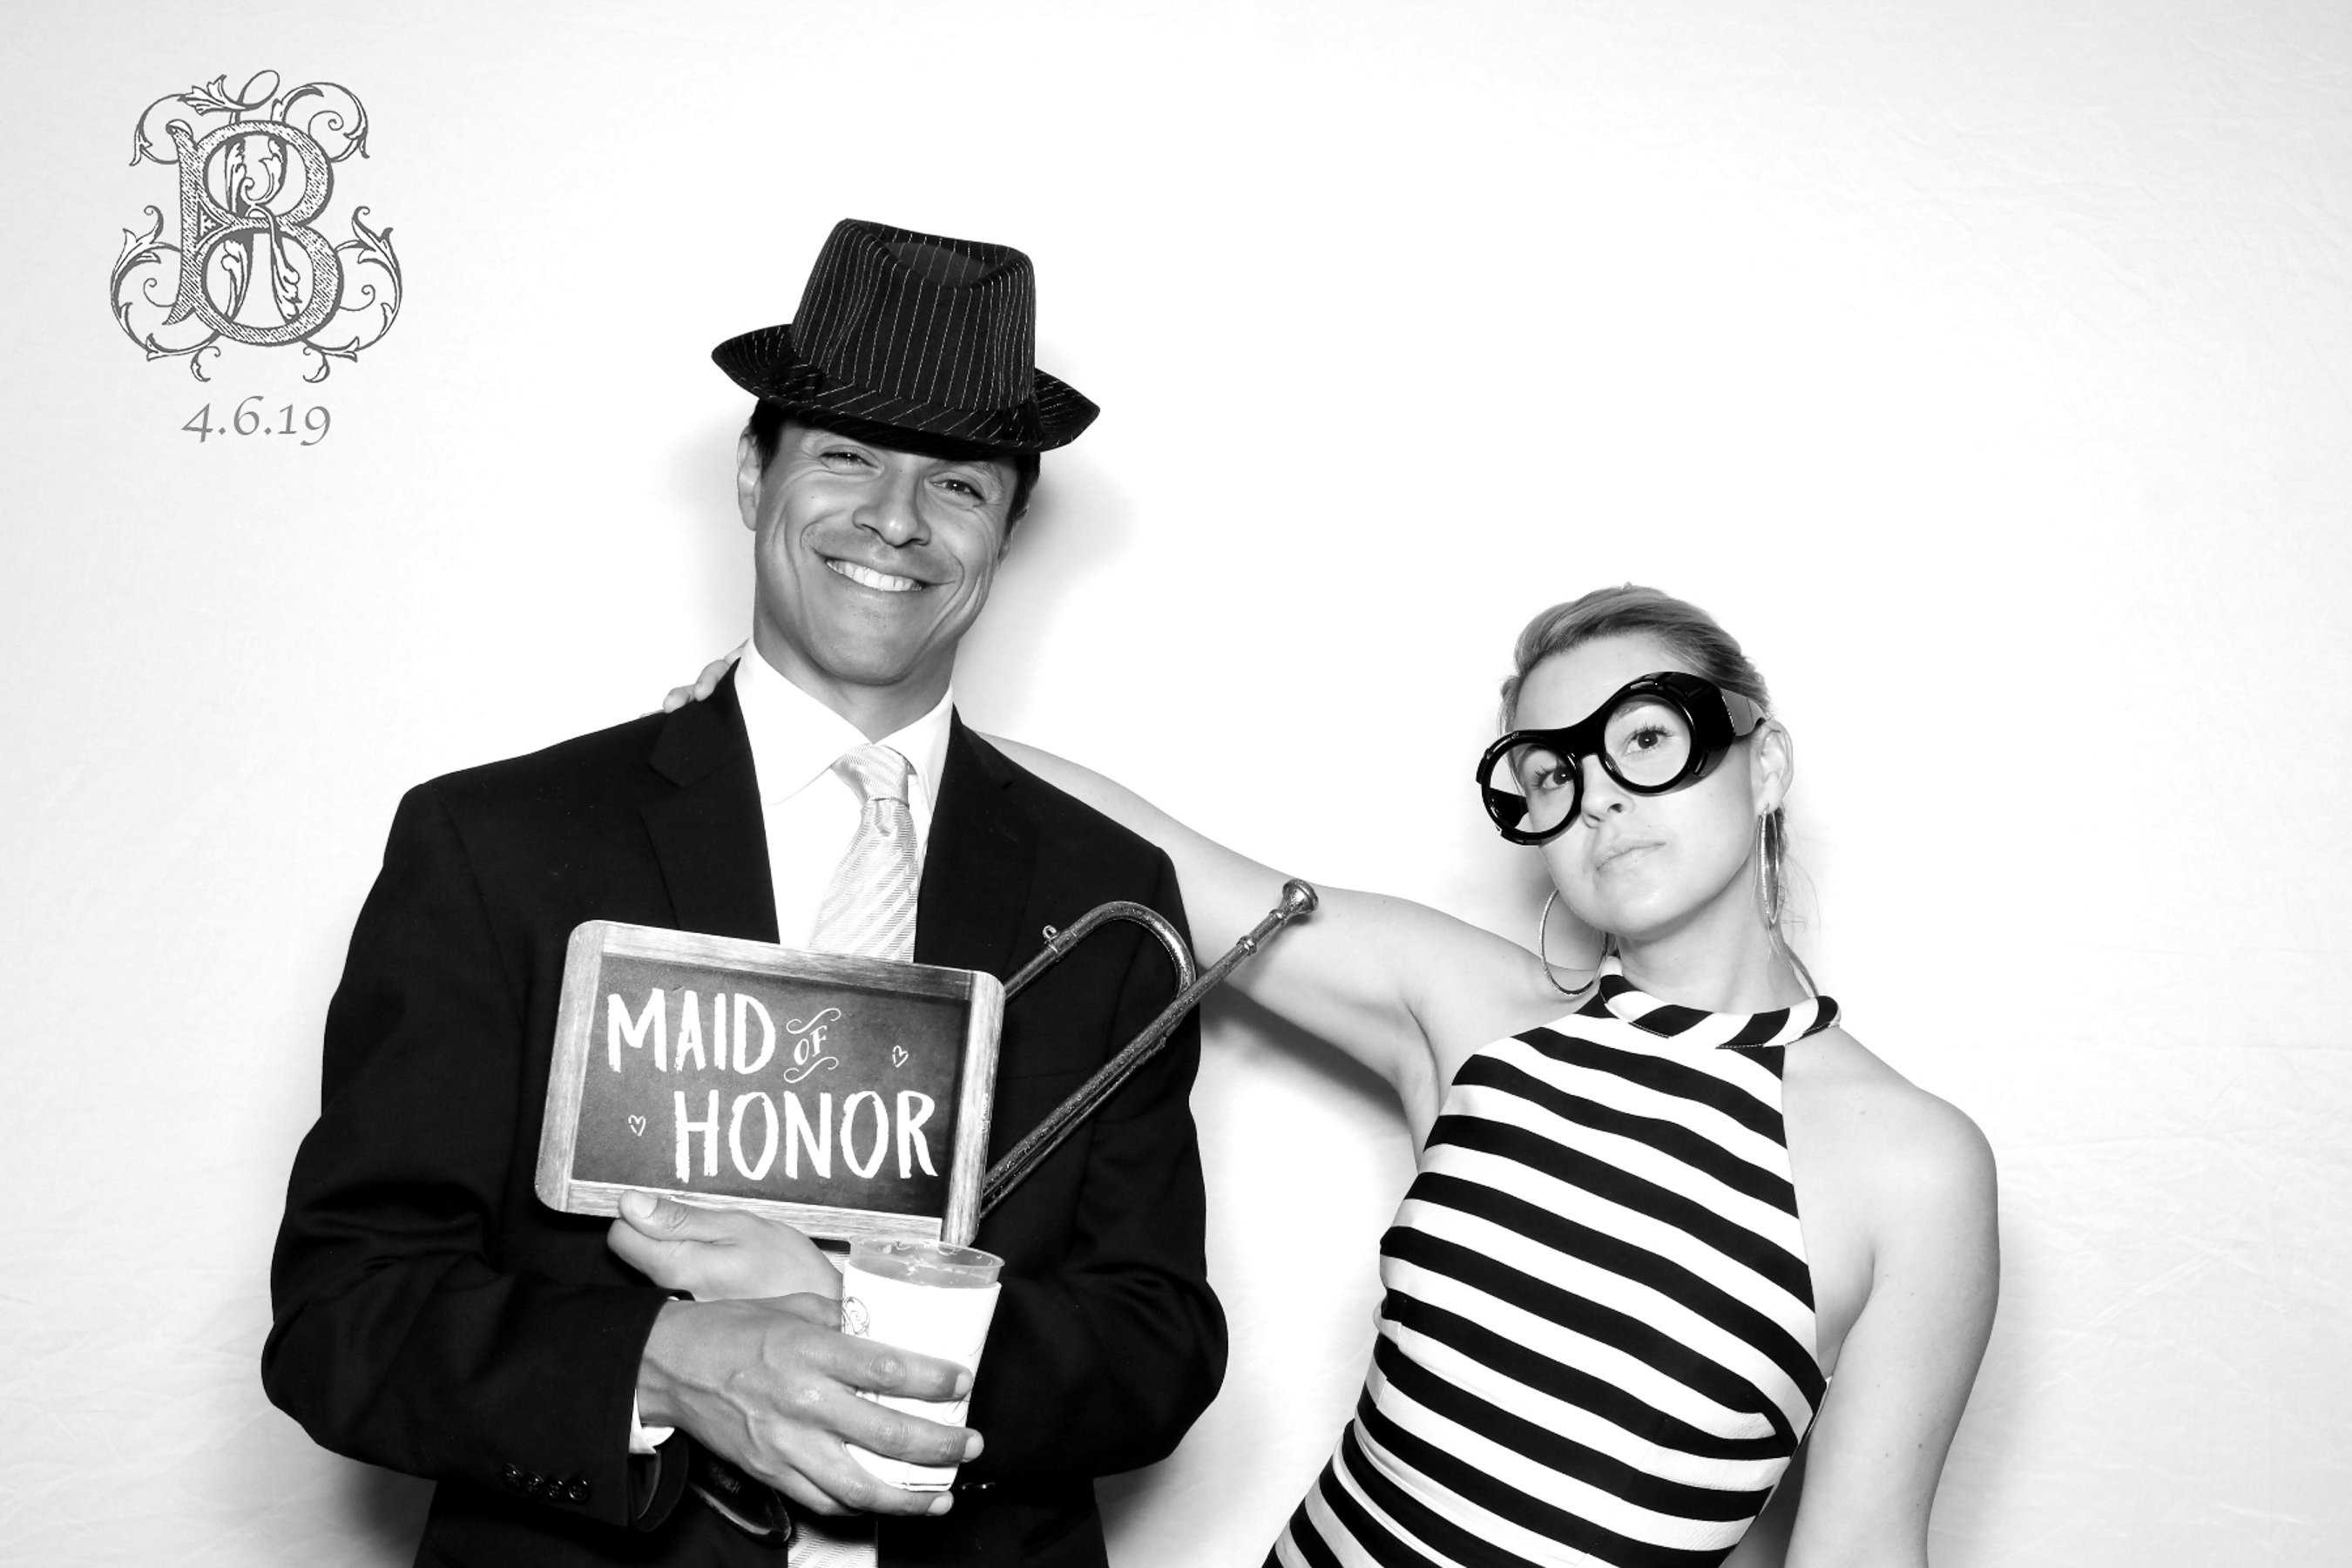 Couple celebrating with 60's inspired costumes for a photo booth